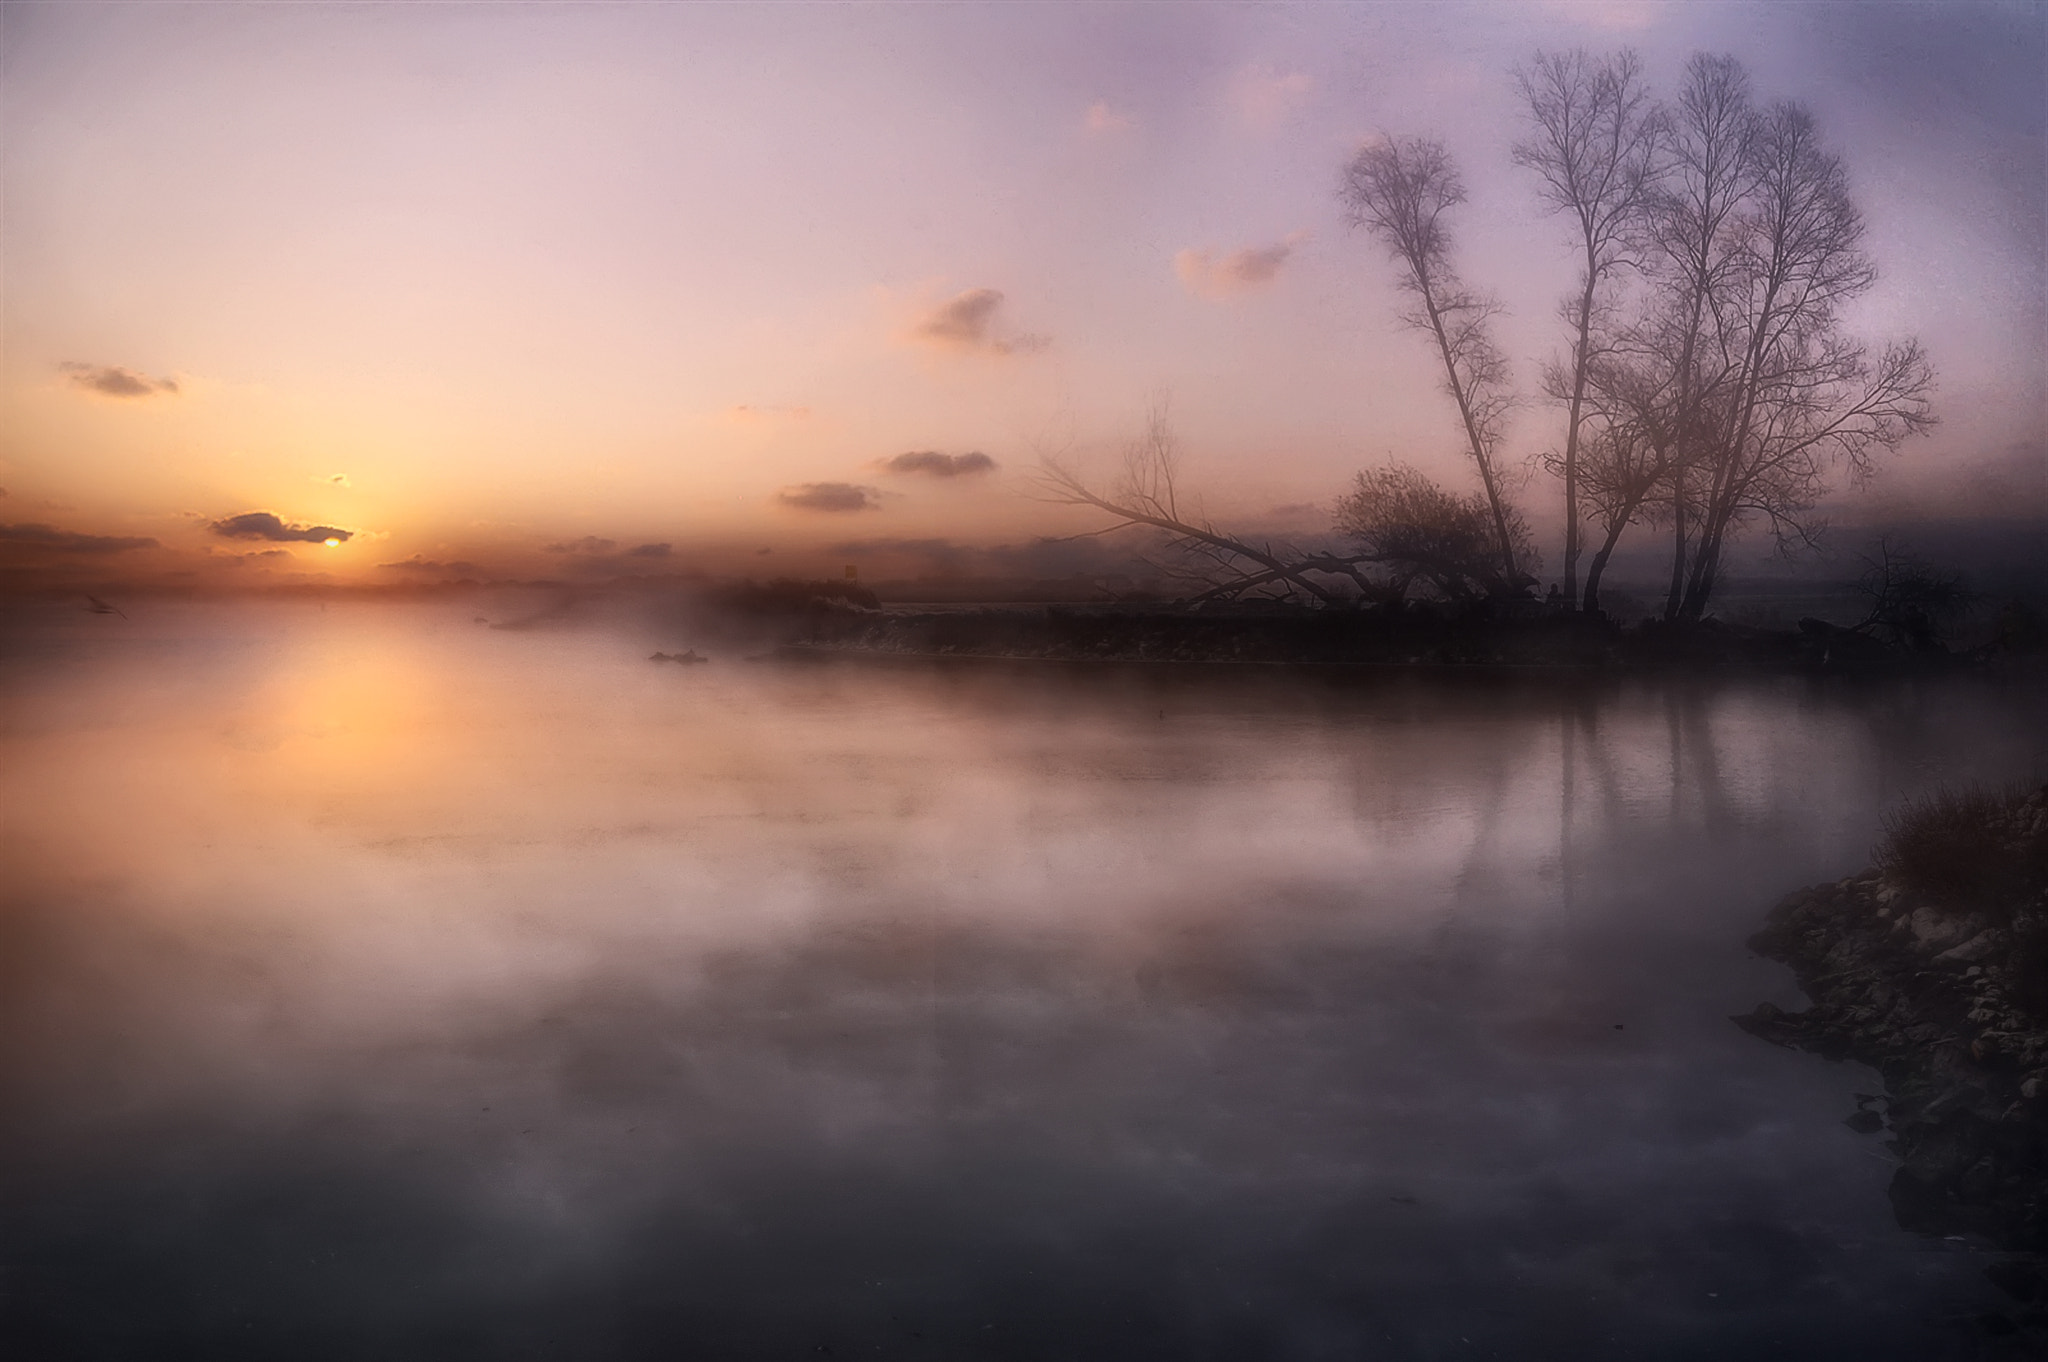 Photograph Morning reflections by Maurizio Fecchio on 500px